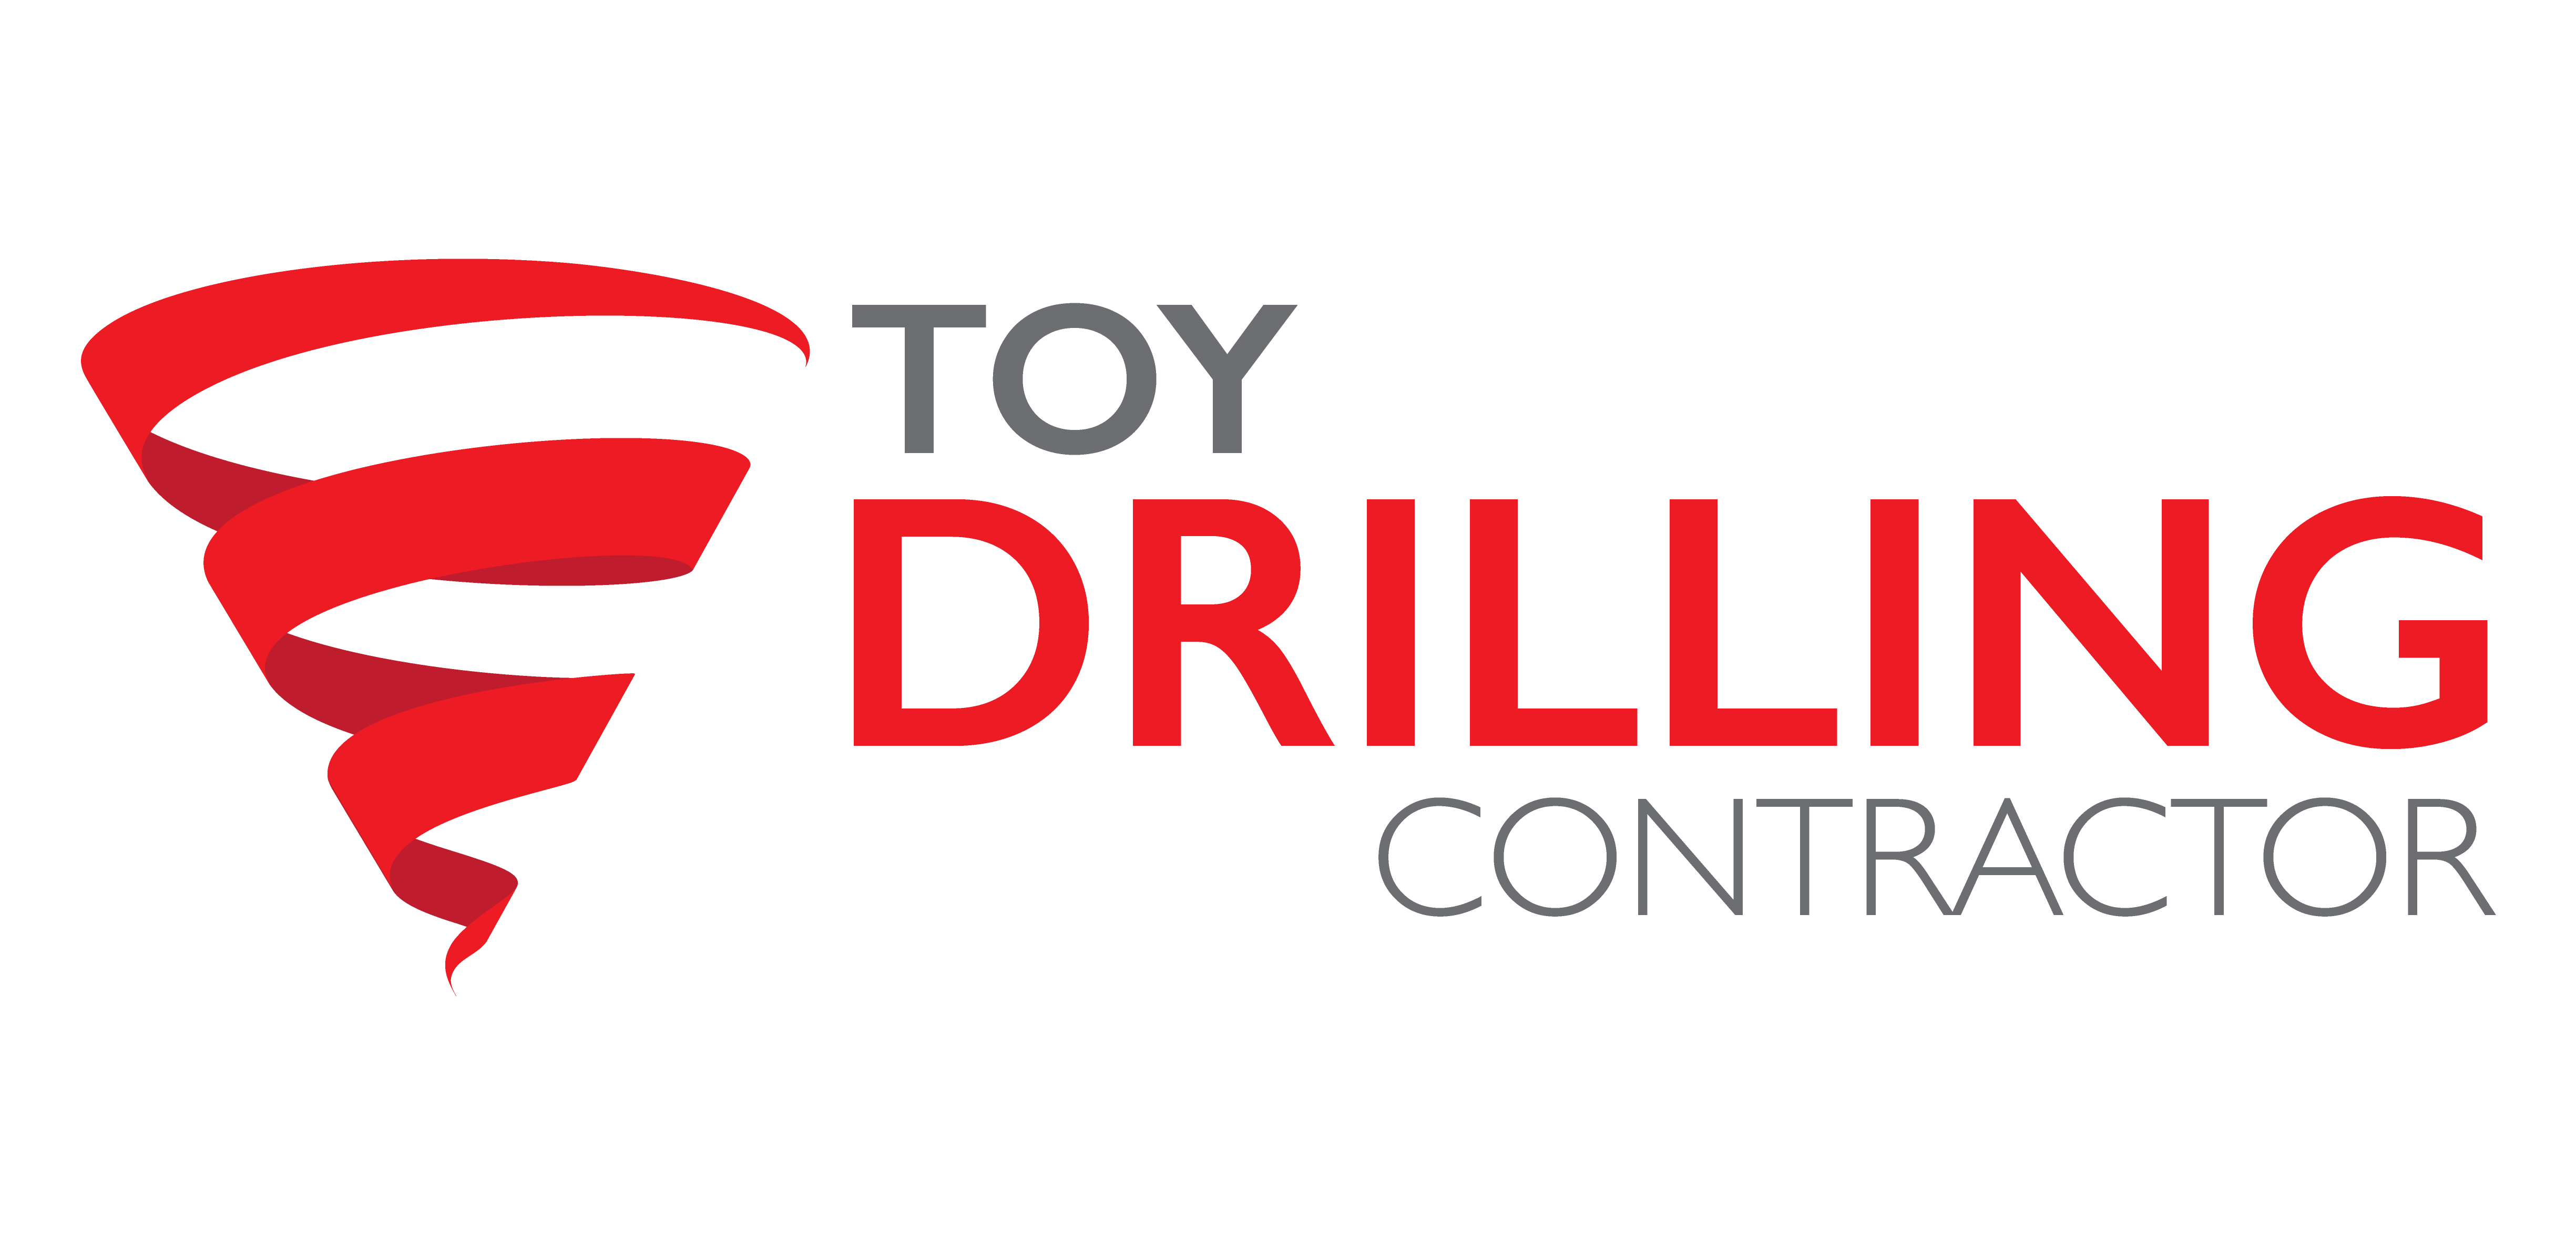 Toy Drilling